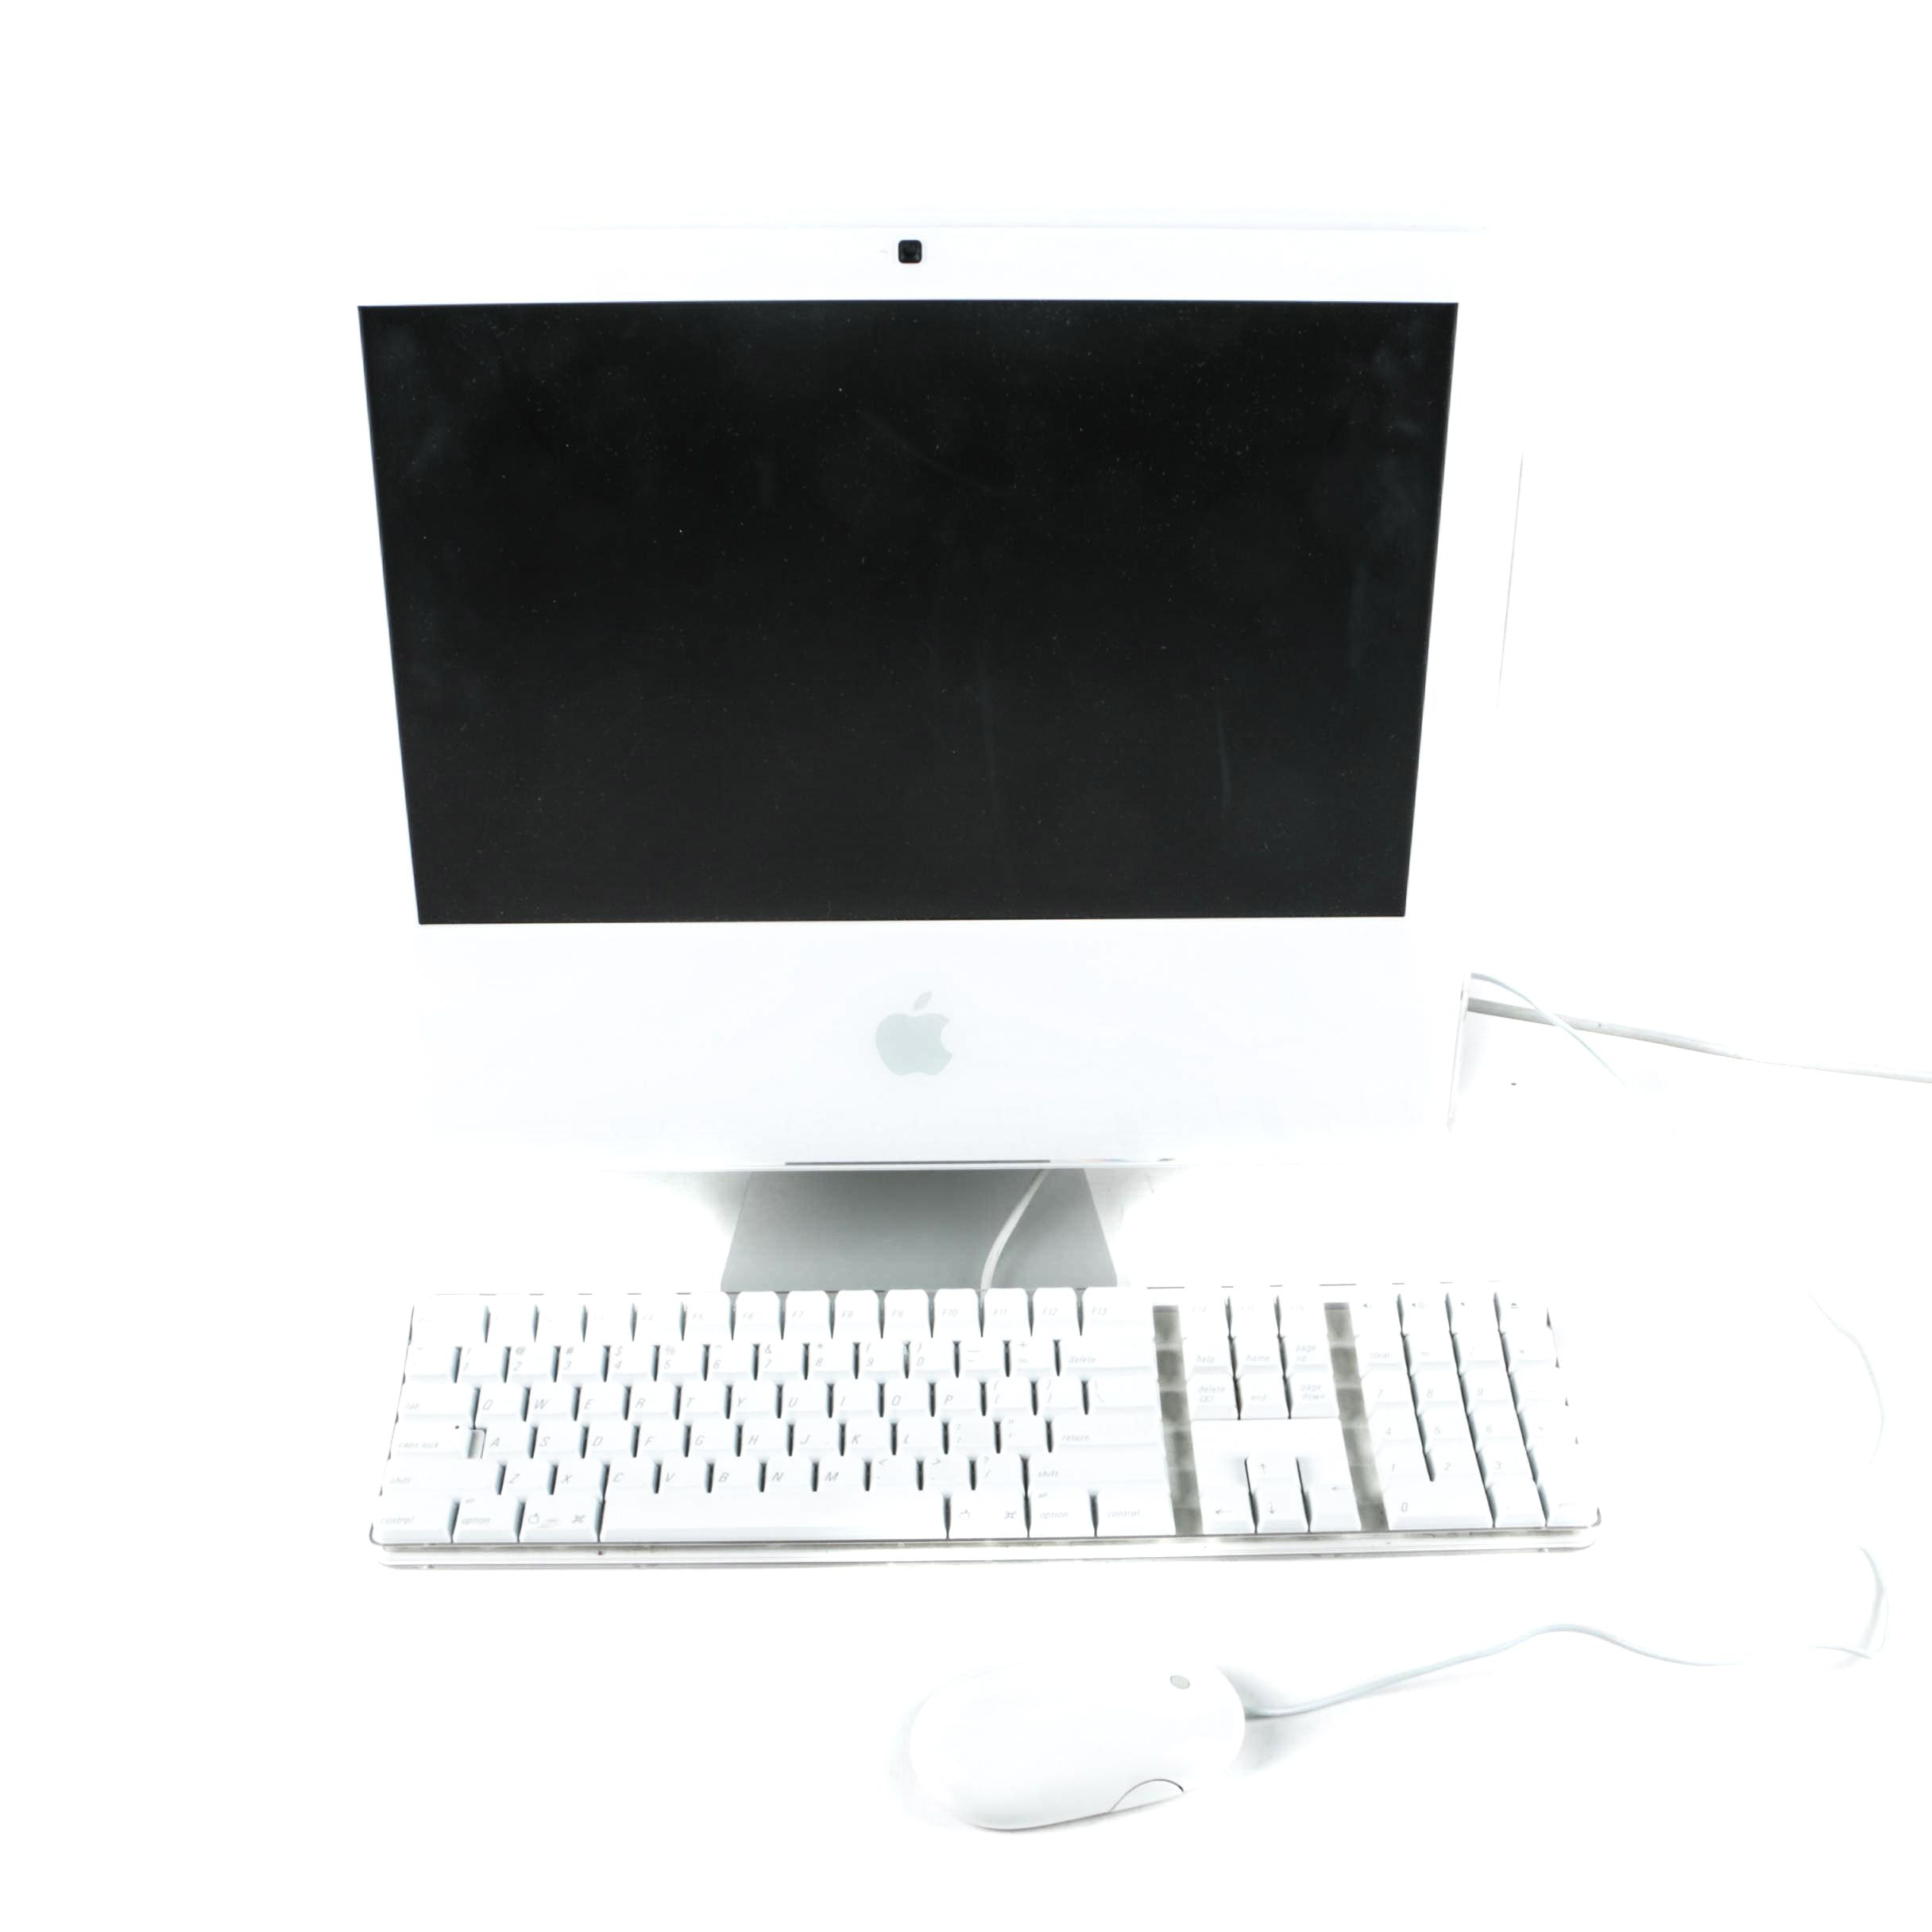 iMac 4.1 Computer with Keyboard And Mouse